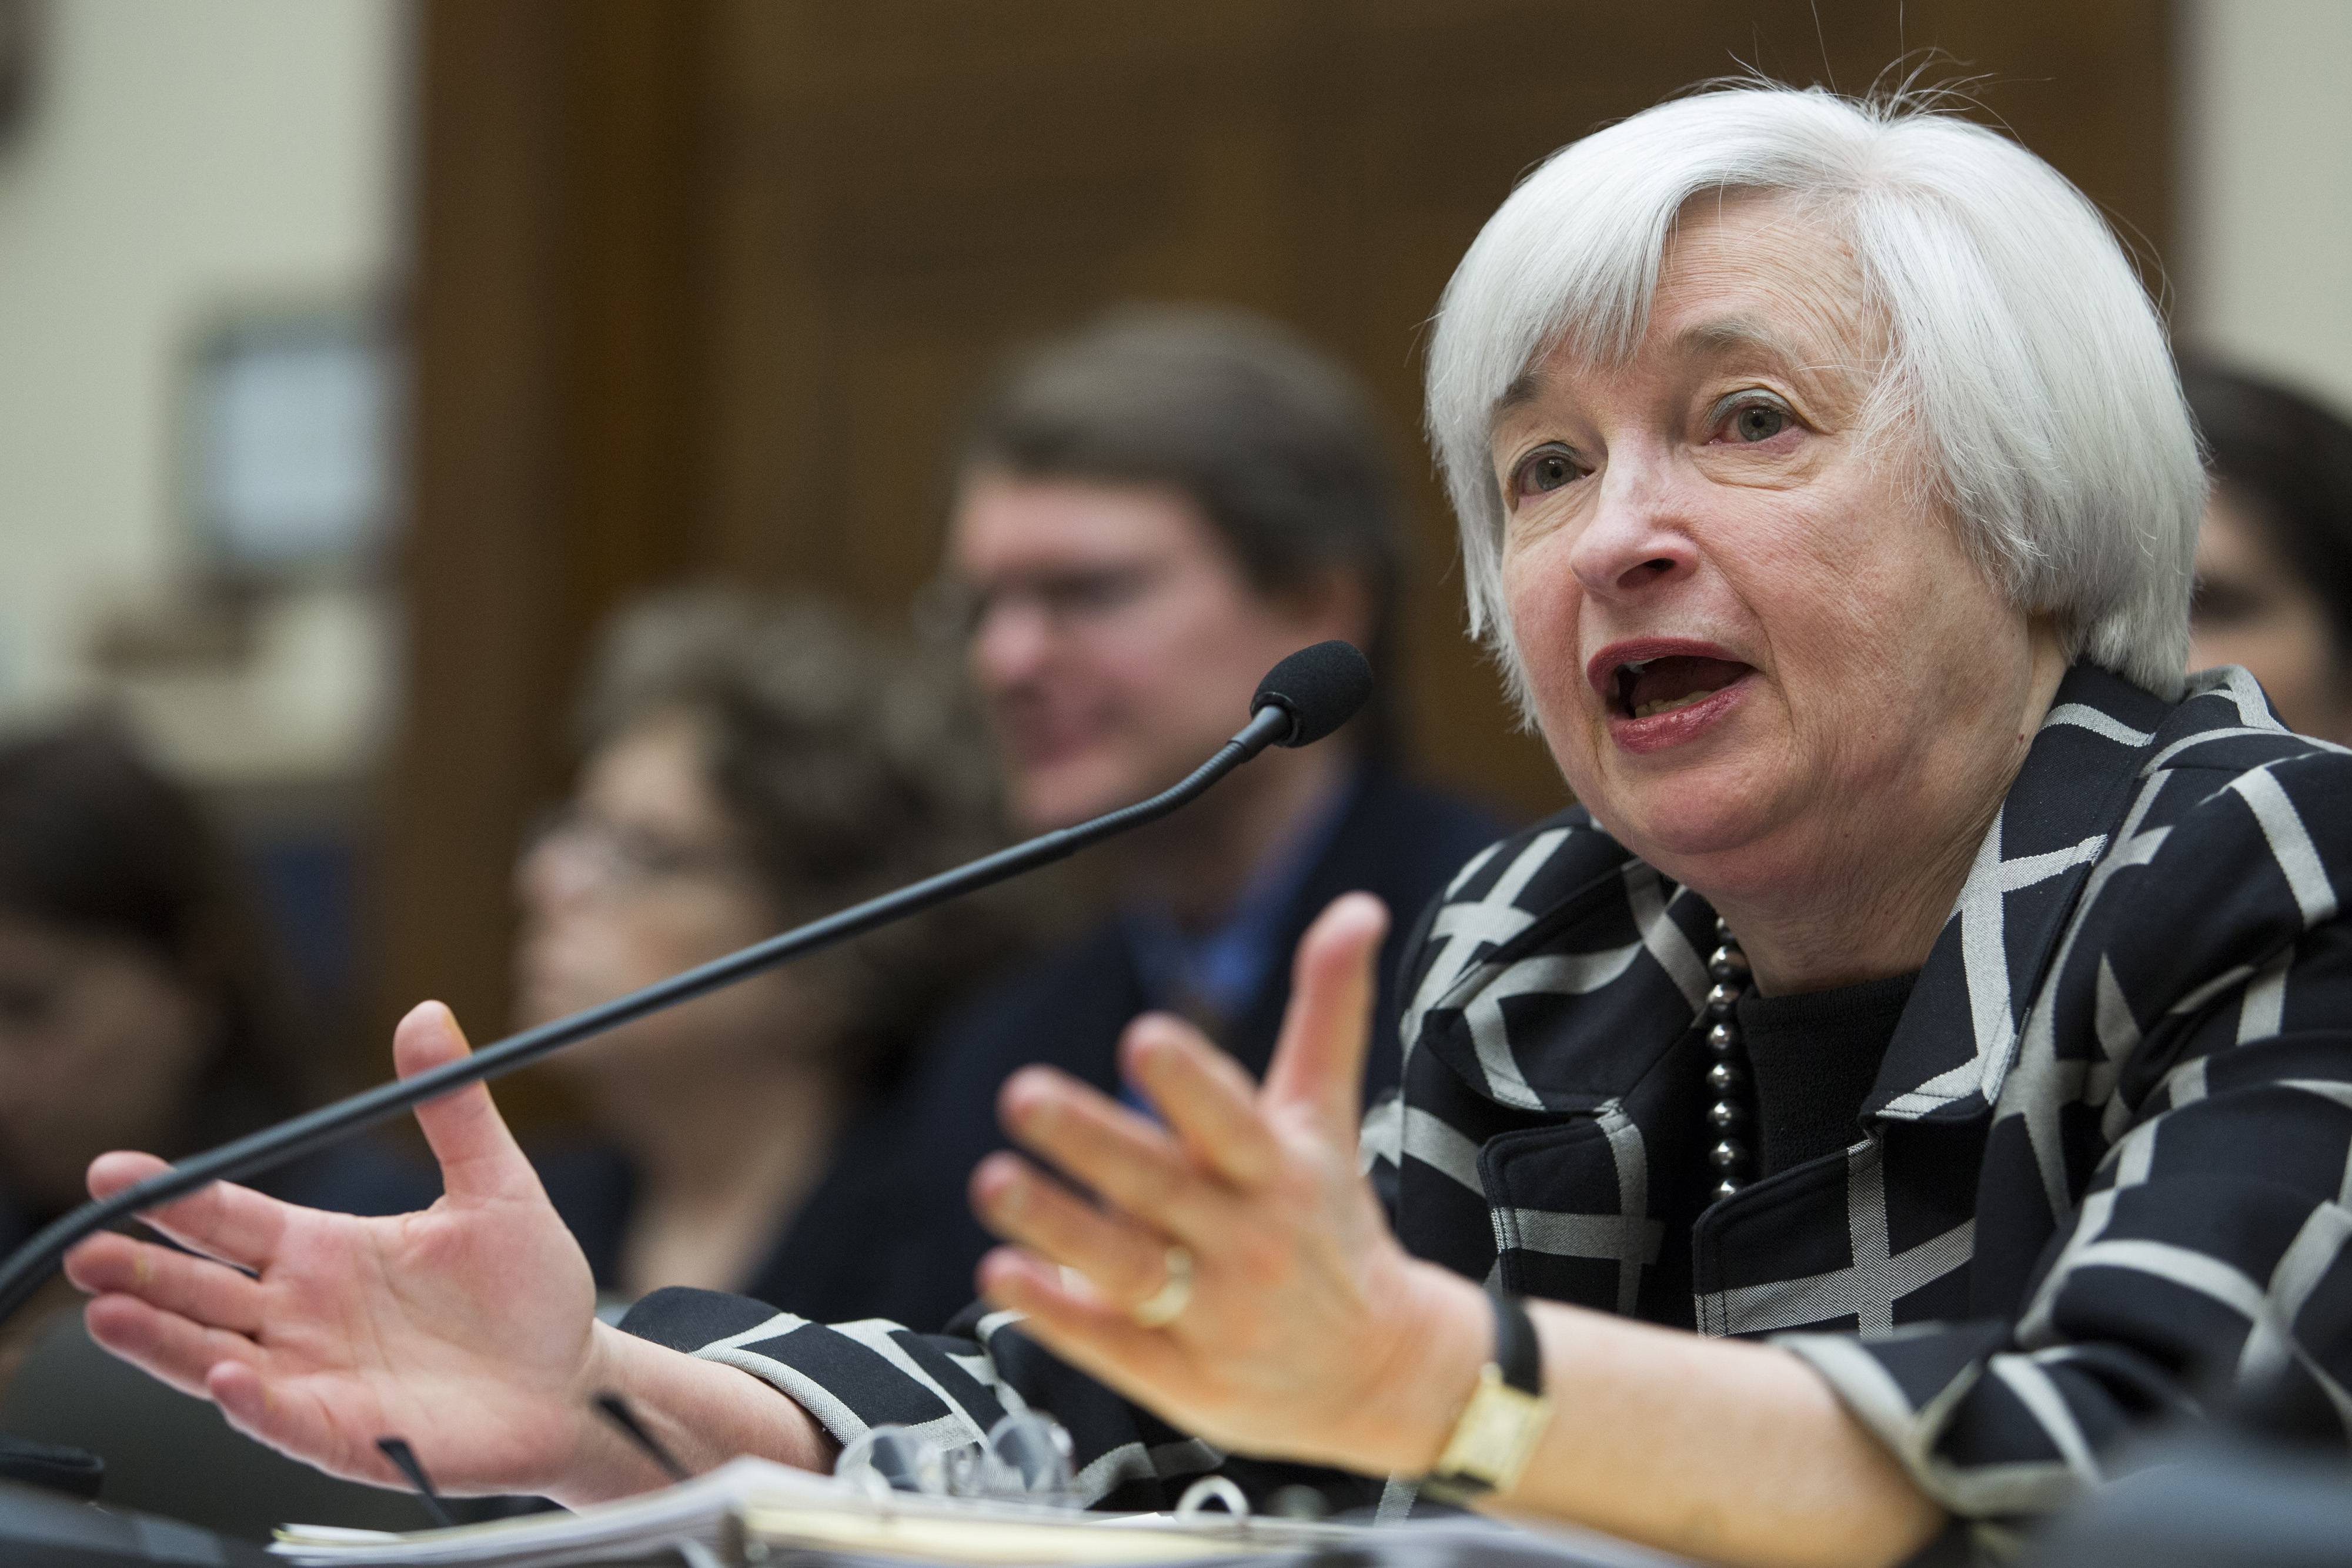 Janet Yellen, chairman of the Federal Reserve, delivers her semi-annual report on monetary policy and the outlook for the U.S. economy to the House Financial Services Committee in Washington on Tuesday. Yellen said more work is needed to restore the labor market to health and pledged to maintain her predecessor's policies to ensure a return to full employment and stable prices.